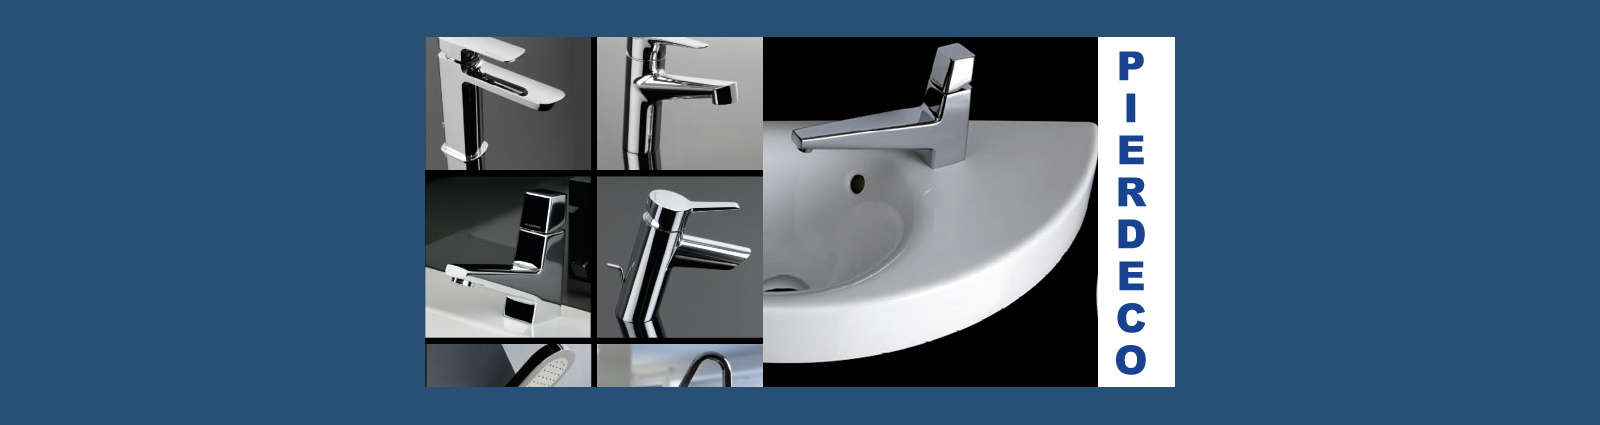 Bathroom Faucets Etobicoke pierdeco design sinks and bathroom faucets - bath emporium